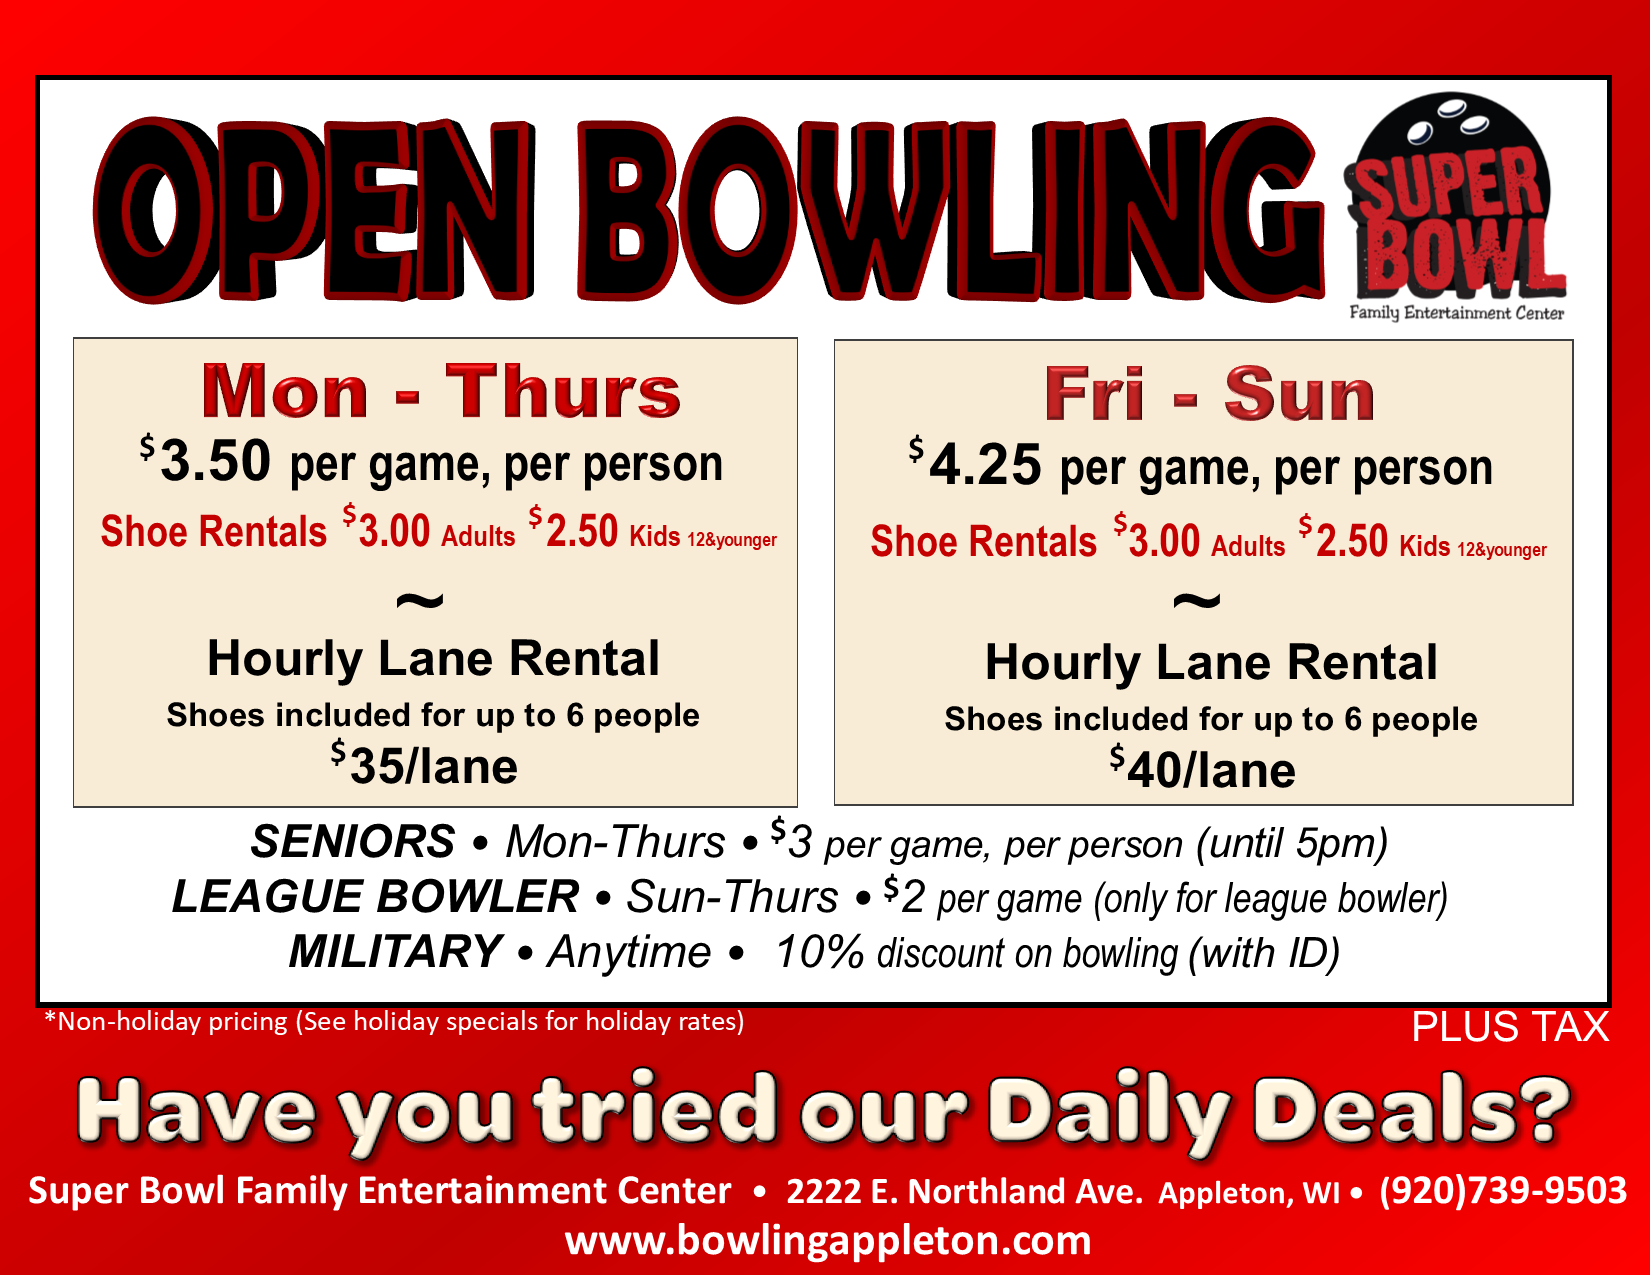 open bowling | open bowling prices | open bowling rates | bowling alley near me | open lanes near me | appleton, wi | super bowl family entertainment center